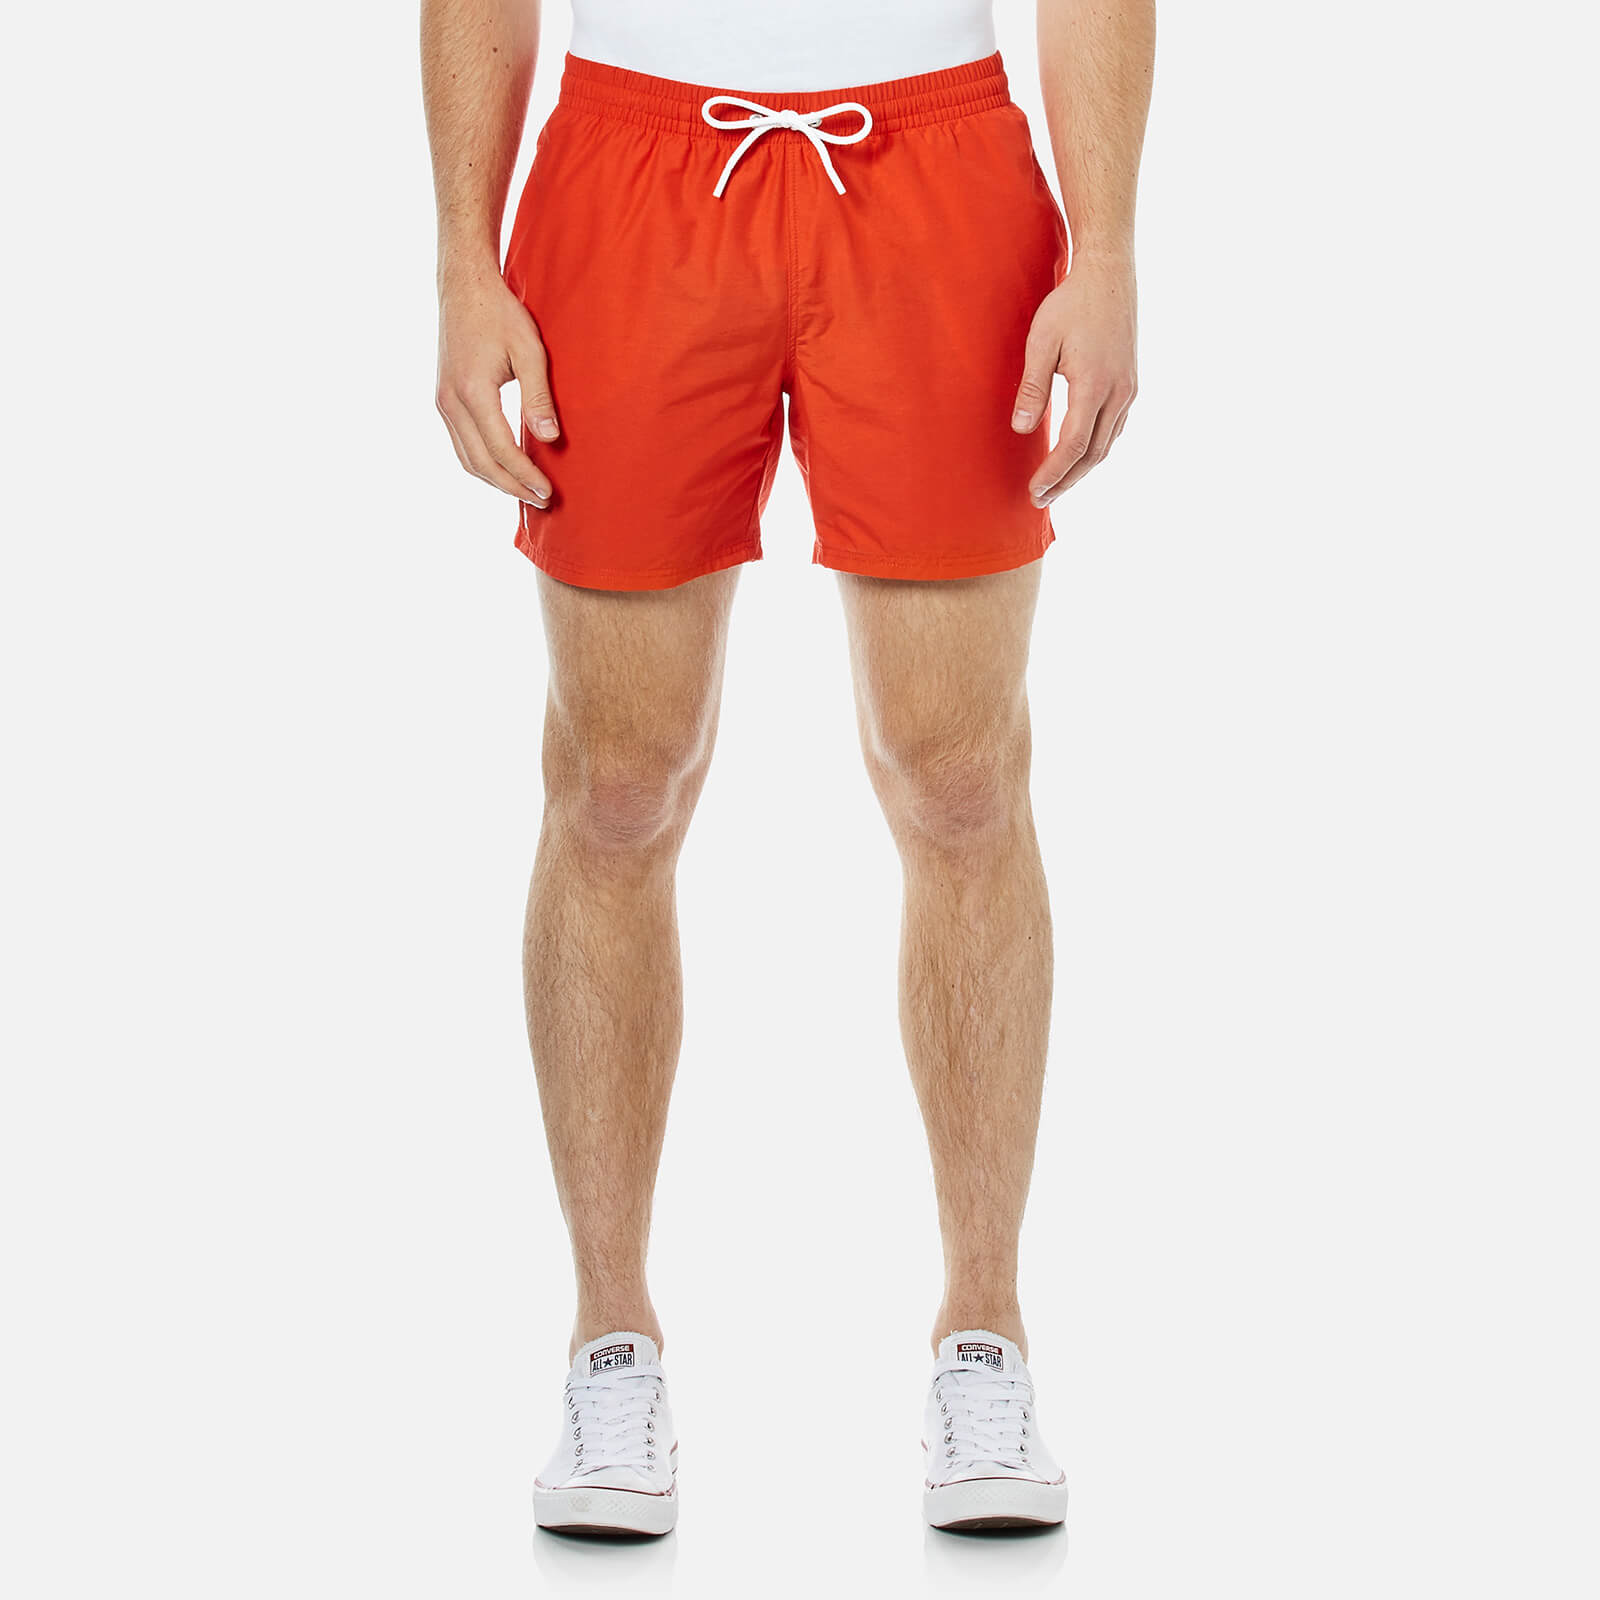 e63b64b2556da Lacoste Men s Classic Swim Shorts - Etna Red - Free UK Delivery over £50